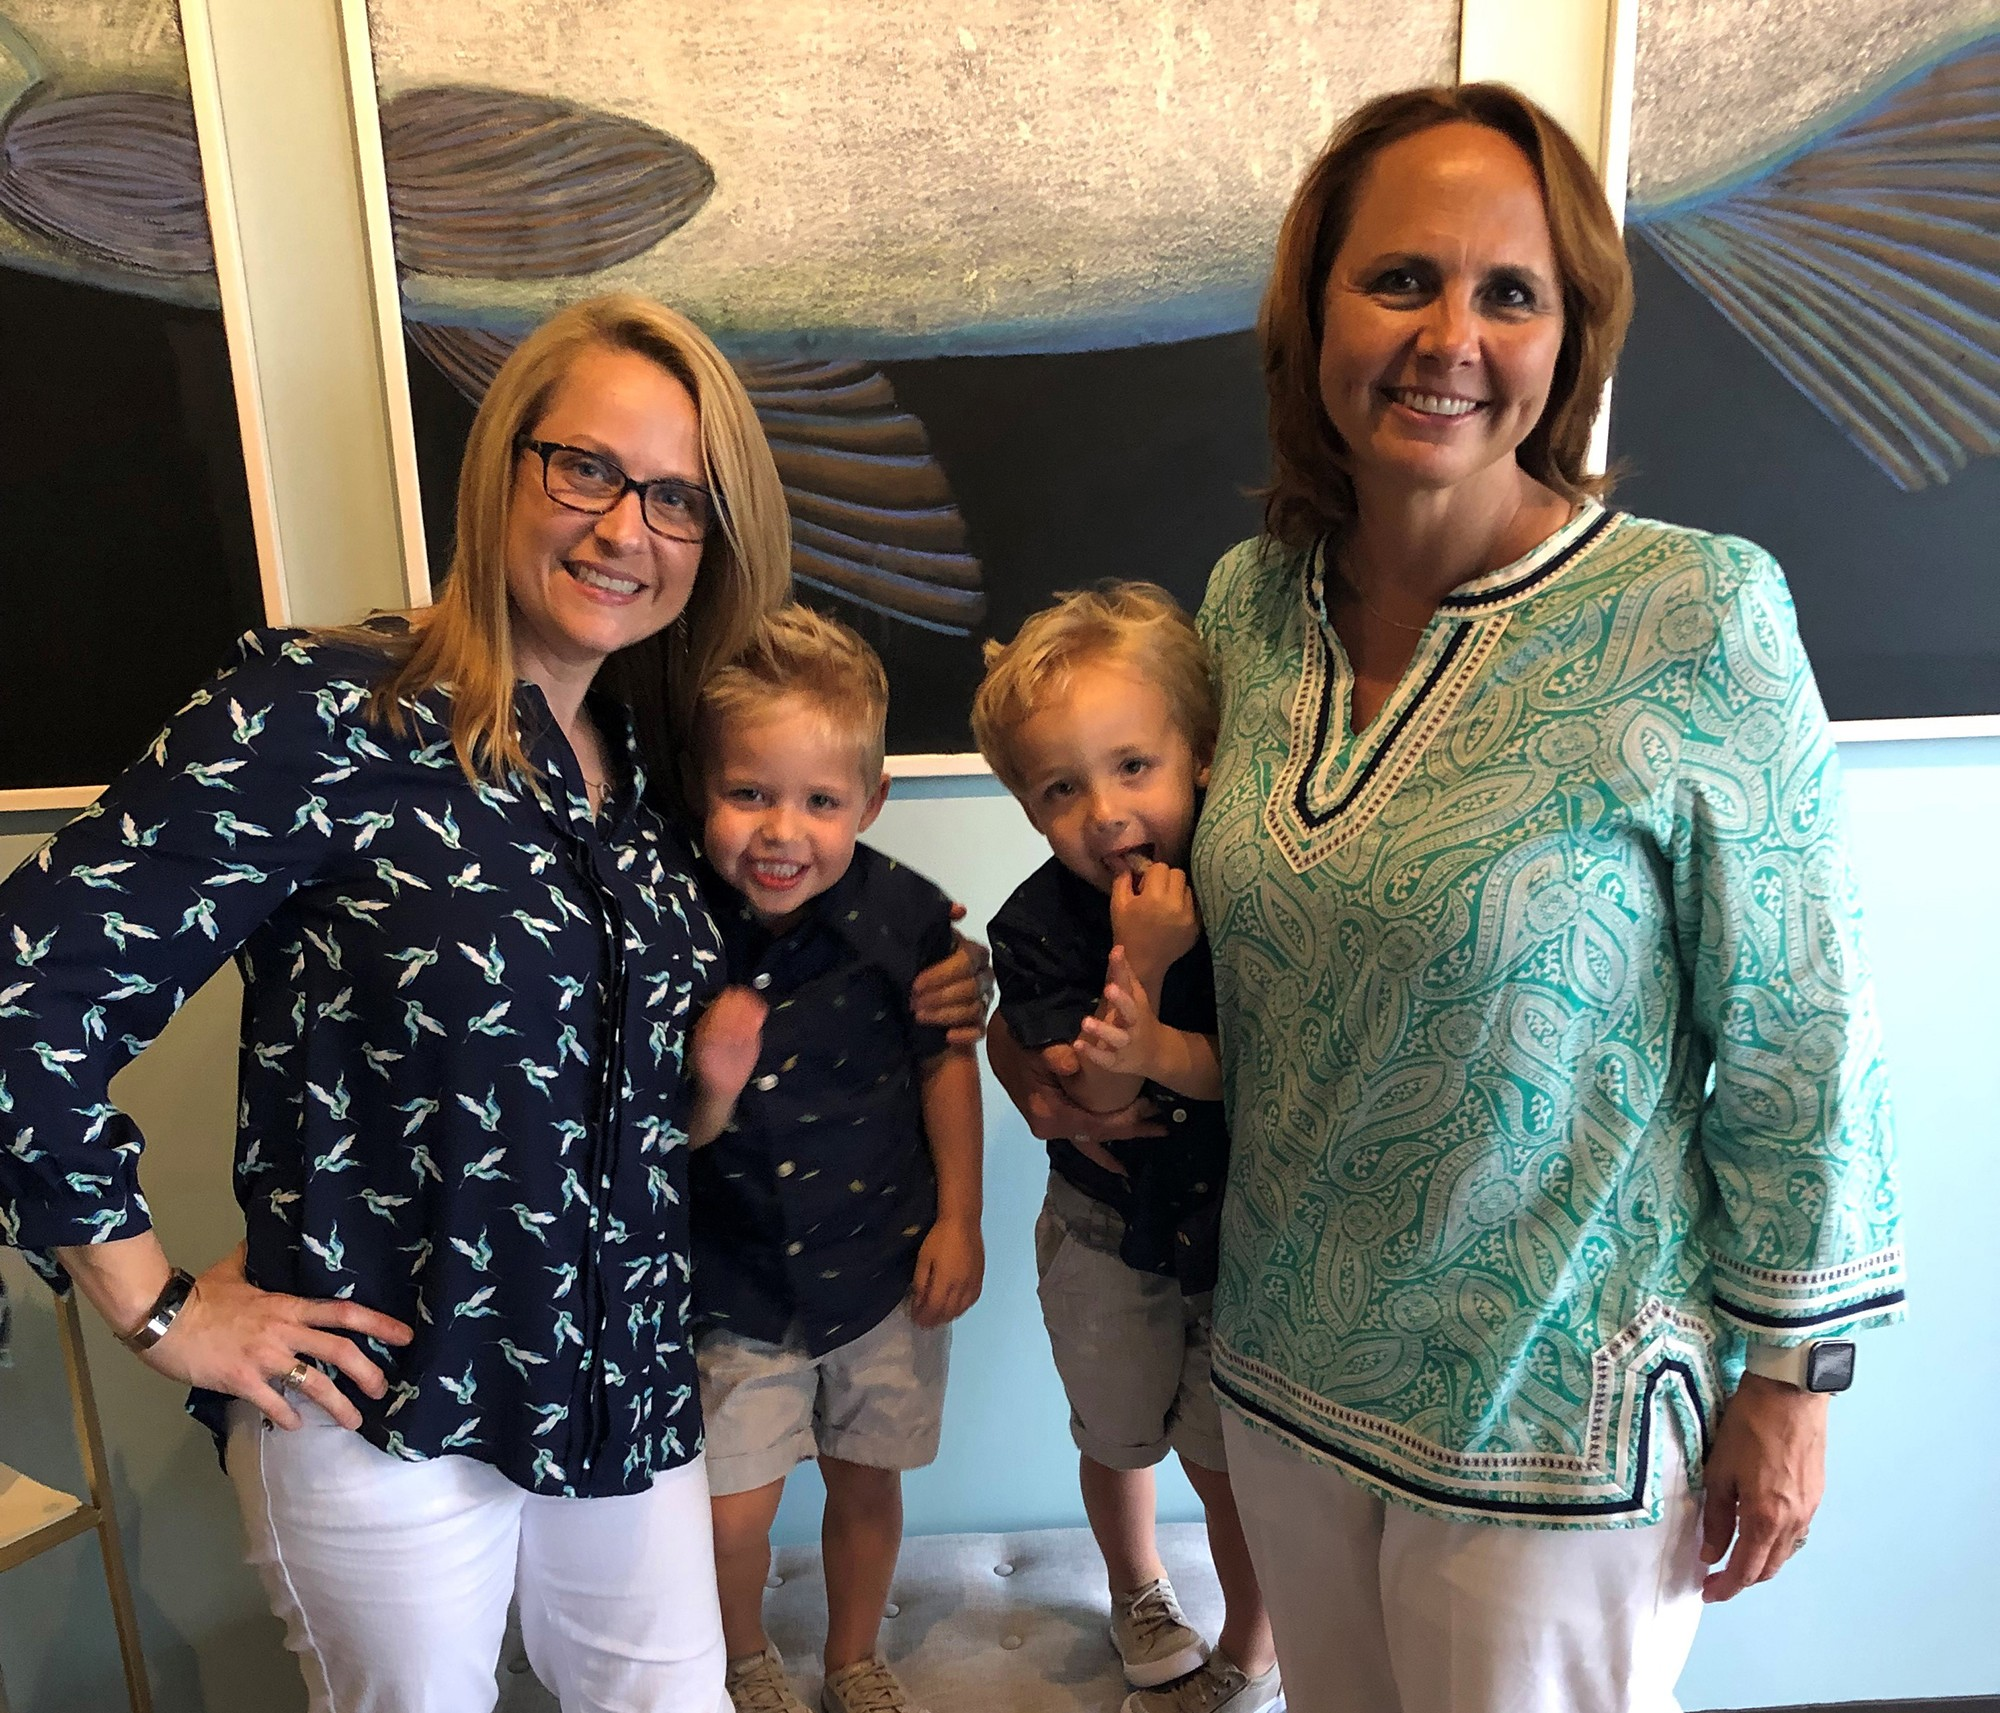 Megan Gosnell with partner Kim are pictured with their three-year-old twin boys, Jackson and Dexter Layne.